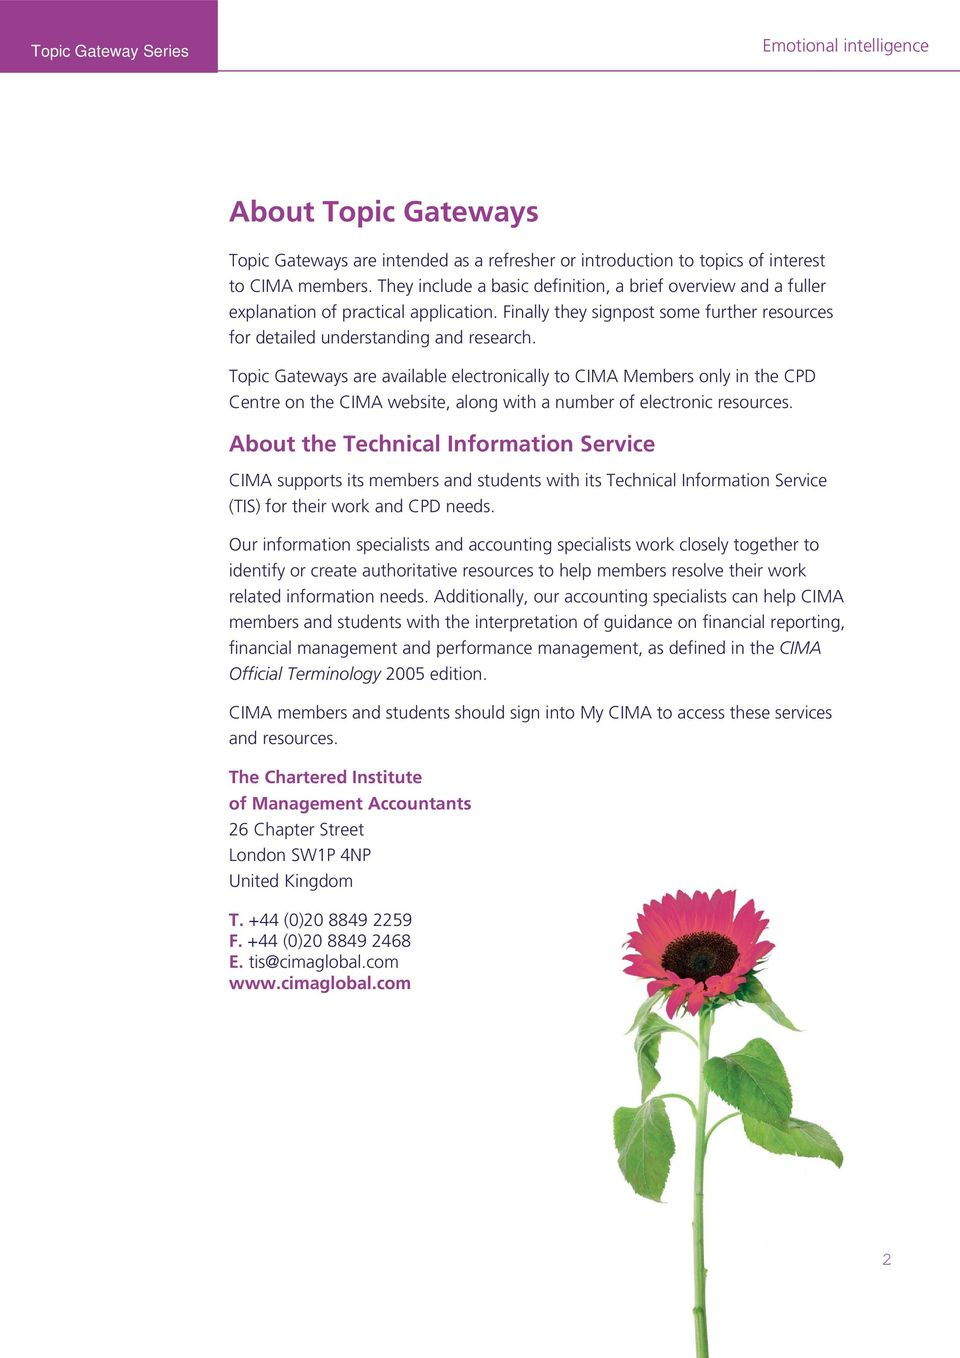 Topic Gateways are available electronically to CIMA Members only in the CPD Centre on the CIMA website, along with a number of electronic resources.